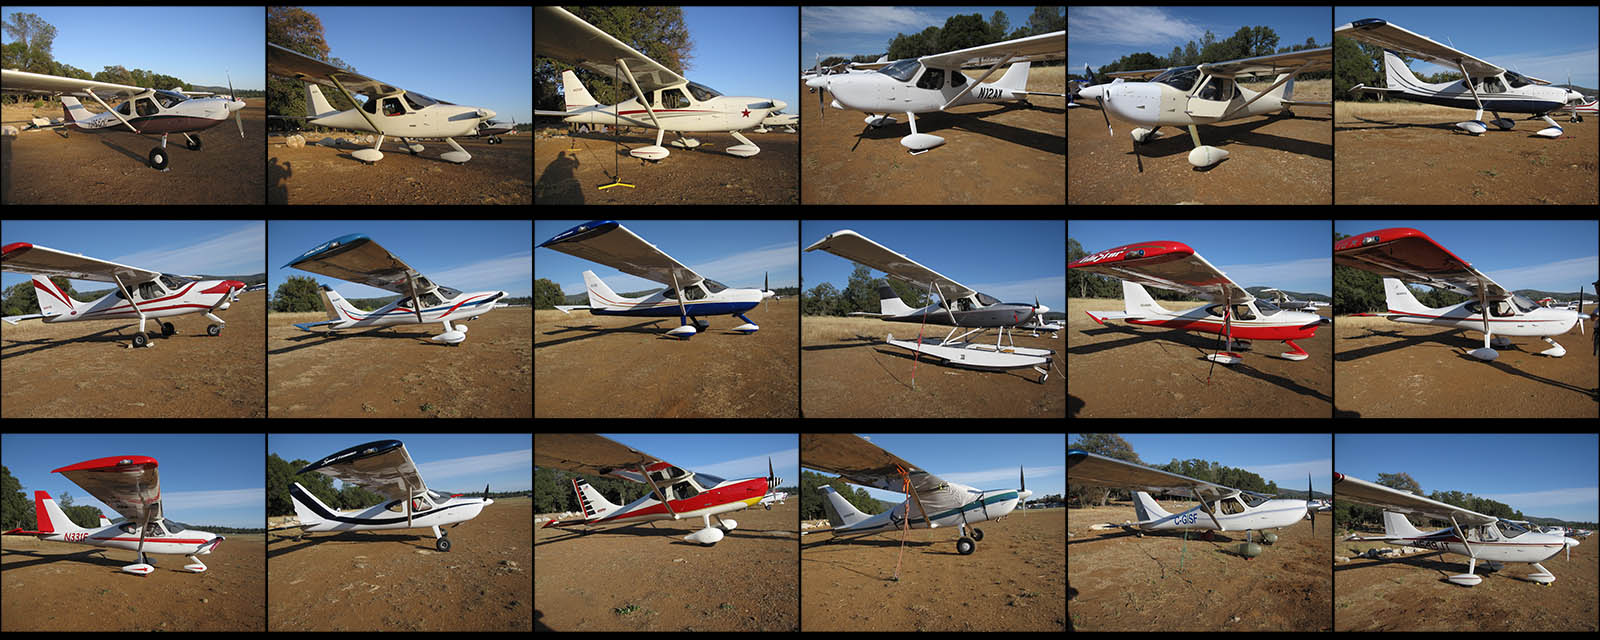 Eighteen aircraft made for record turnout! Photo: Arlo Reeves.